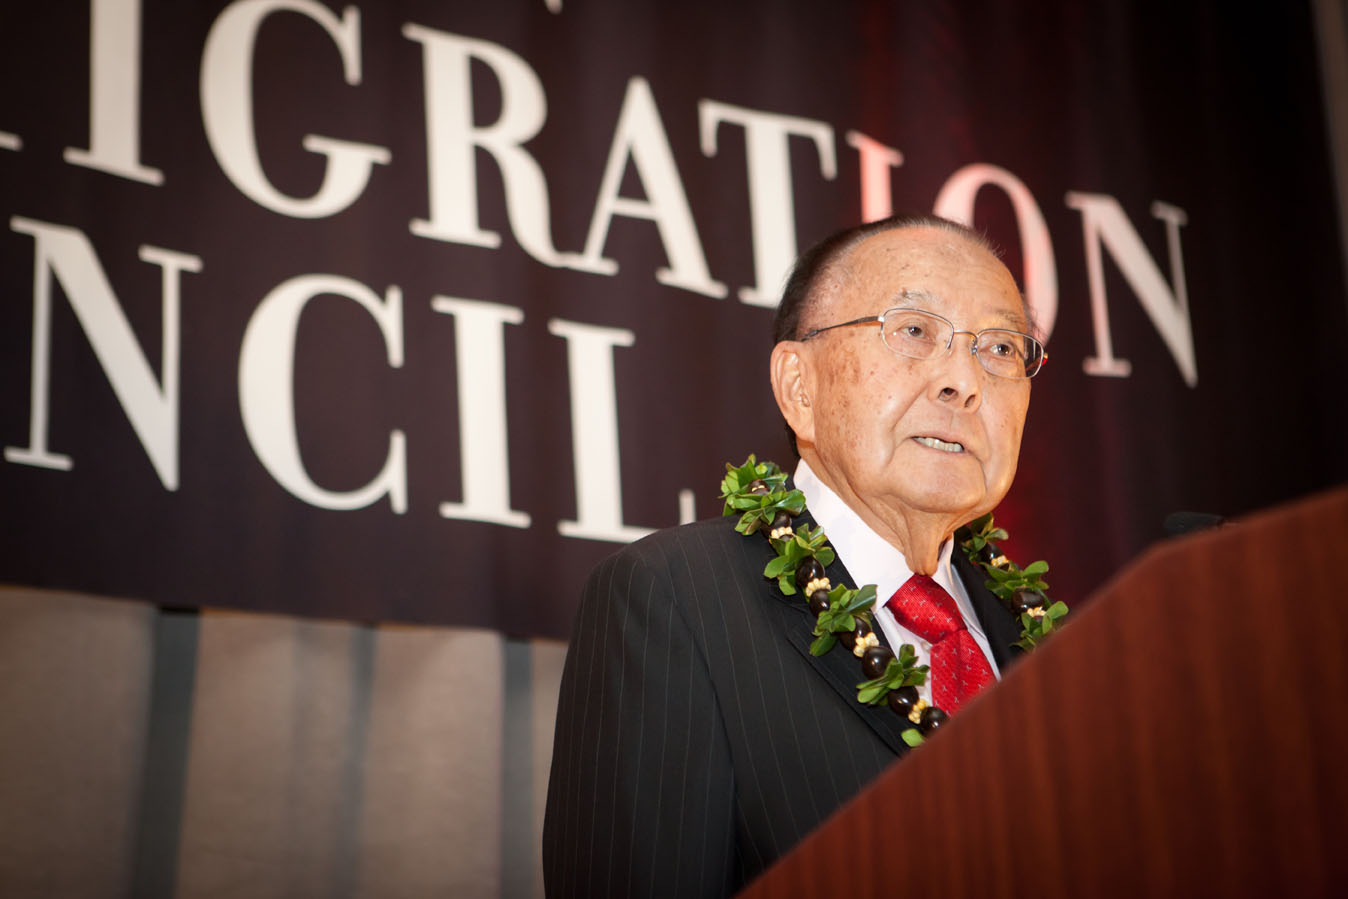 Late Senator Daniel Inouye accepting his Stephen K. Fischel Distinguished Public Service Award from the American Immigration Council, Spring 2011